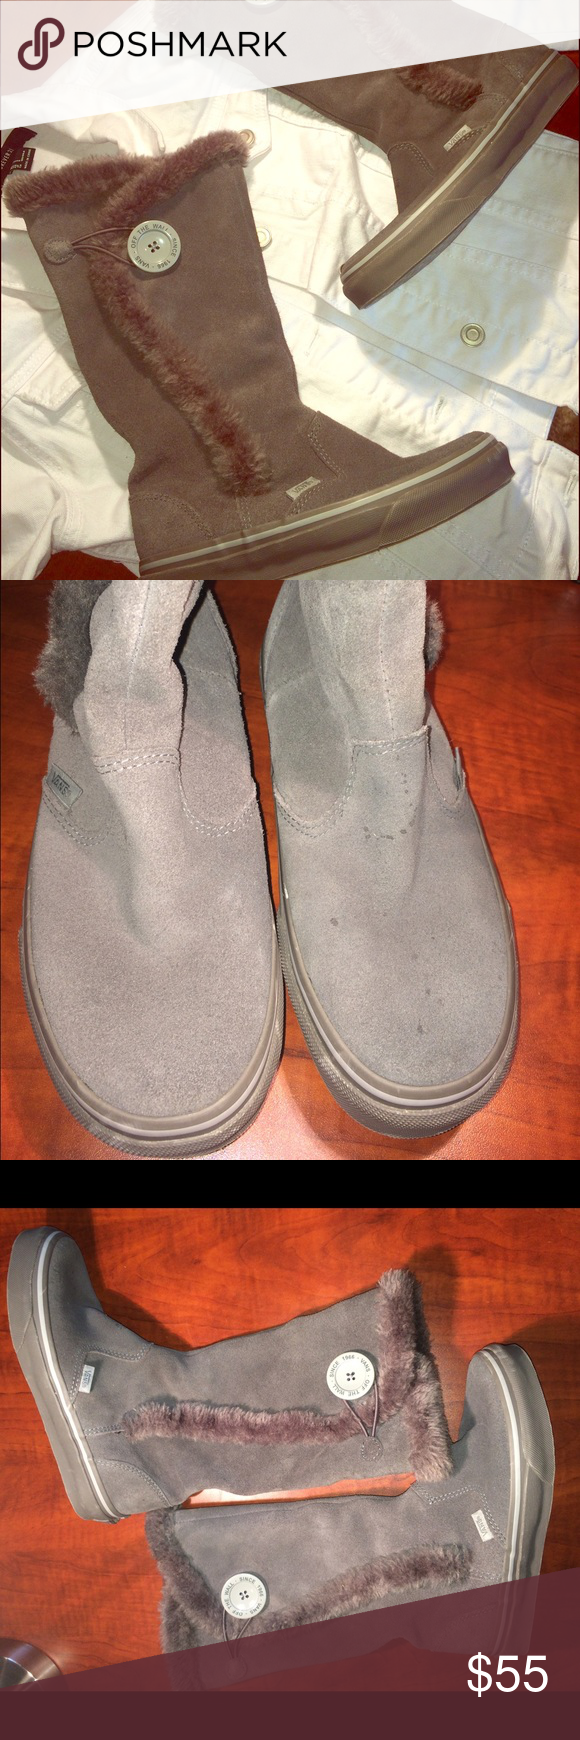 6c2158d0681442 RARE Gray Suede Vans Faux Fur Lined Boots Hard to find Vans boots lined  with faux